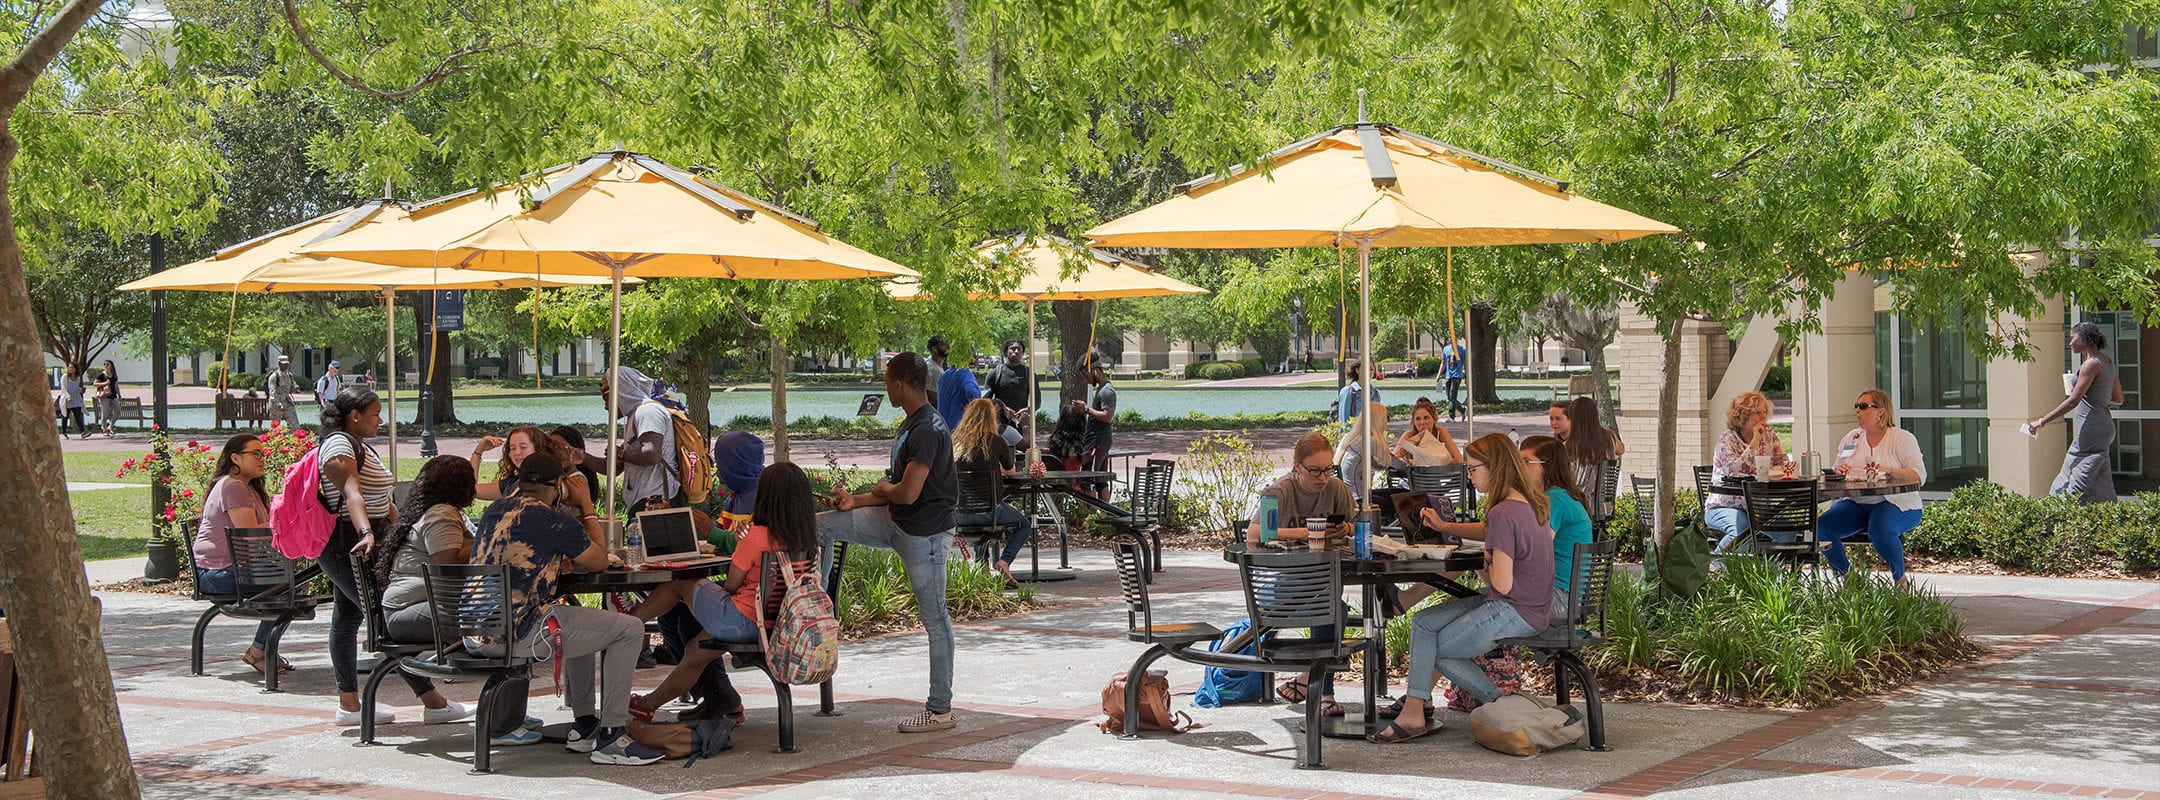 Outdoor tables, with umbrellas over them, on CSU's campus, filled with students on lunch break.